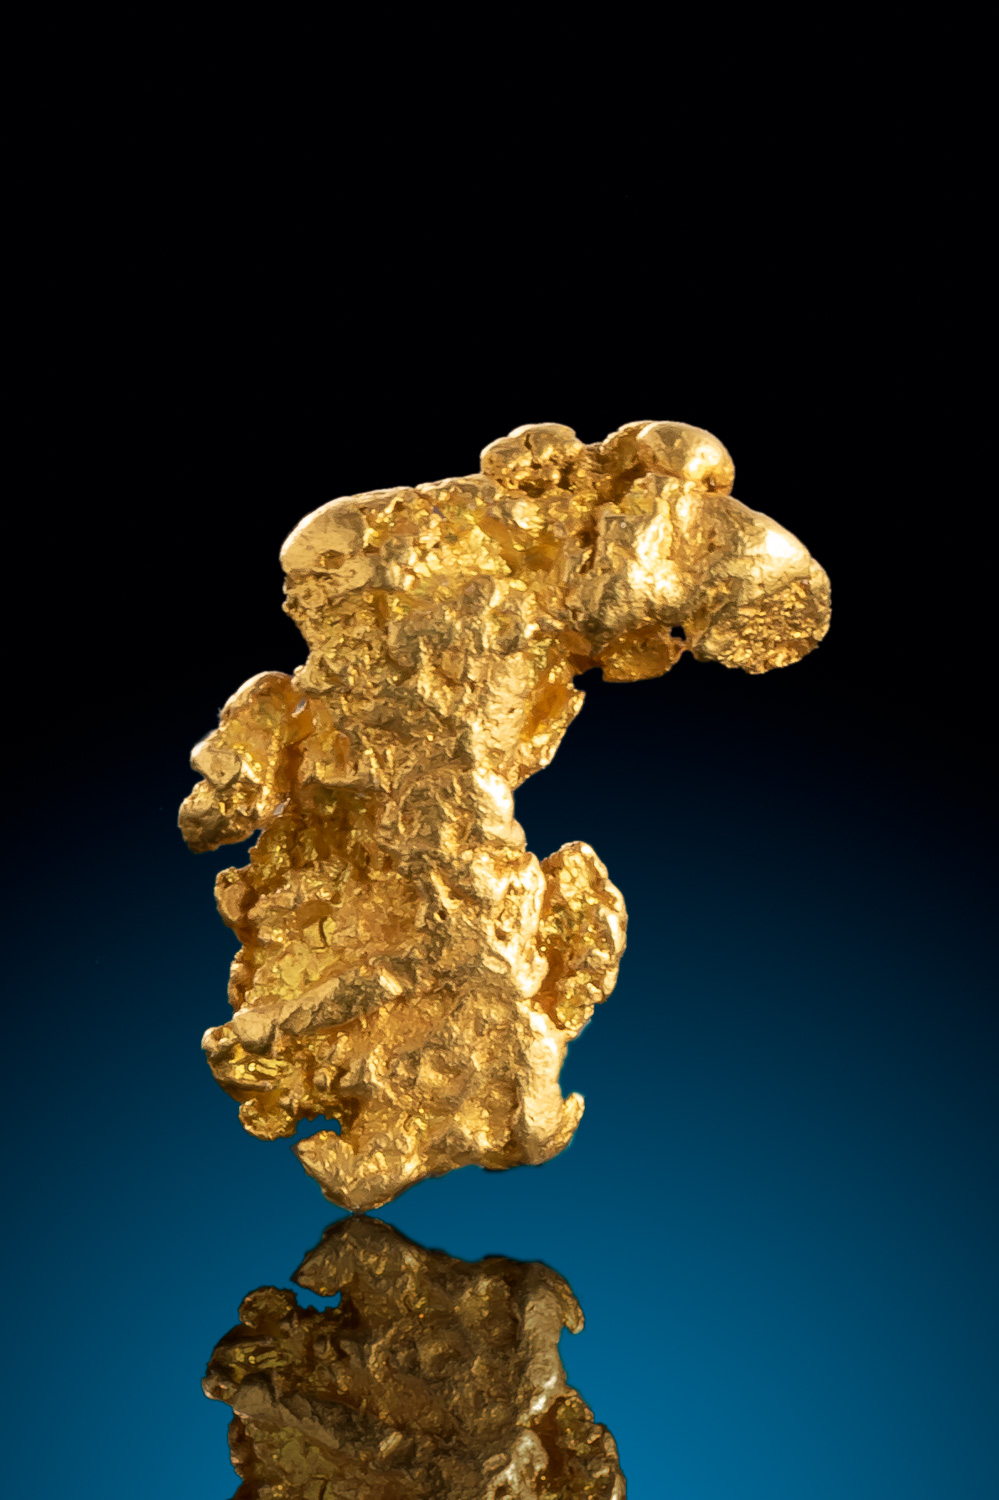 Curved and Textured - Native Alaskan Gold Nugget